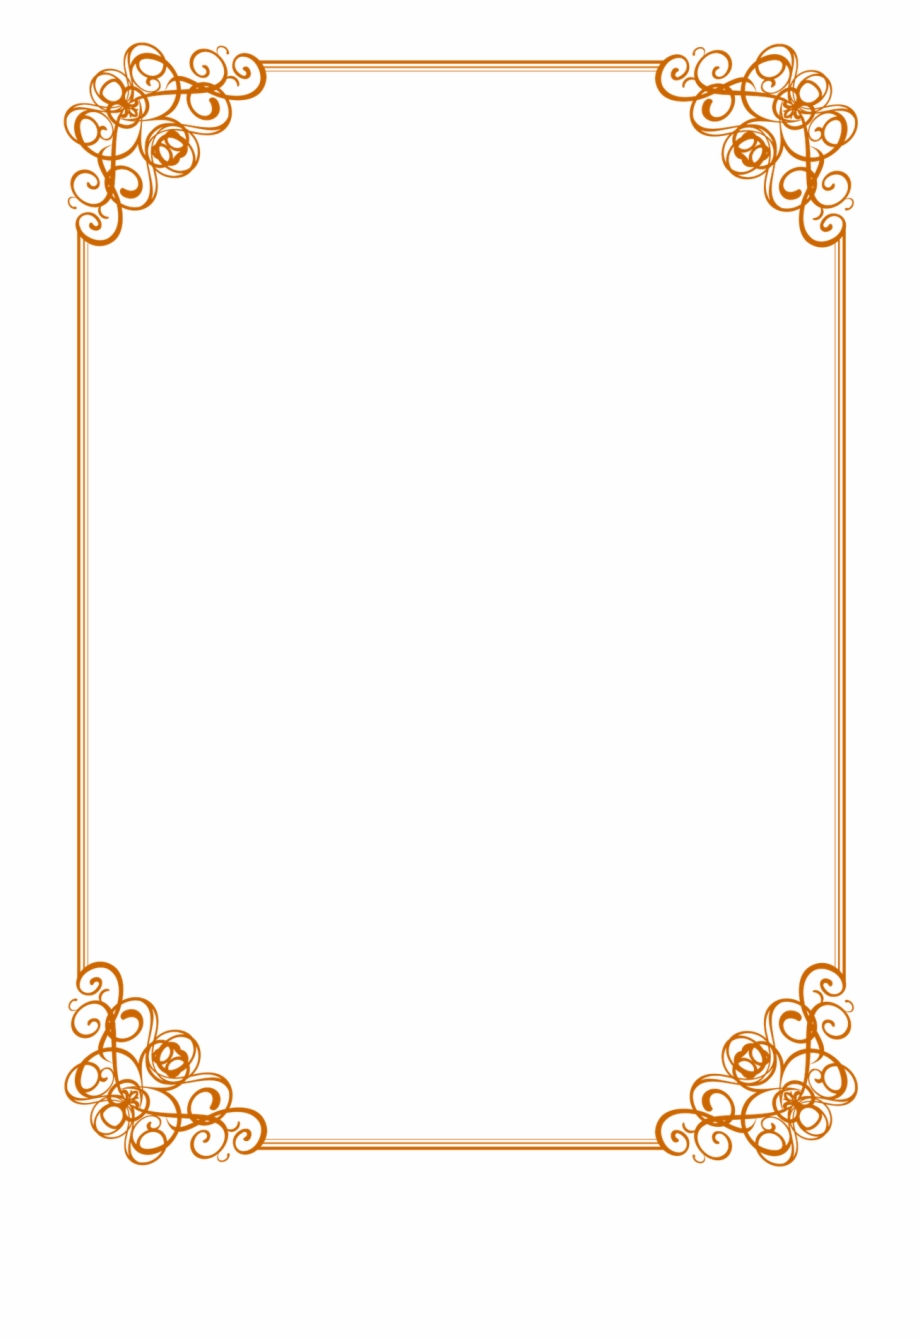 Certificate borders clipart templets graphic royalty free download Certificate Borders Templates Free 76484 - Border For Certificate ... graphic royalty free download